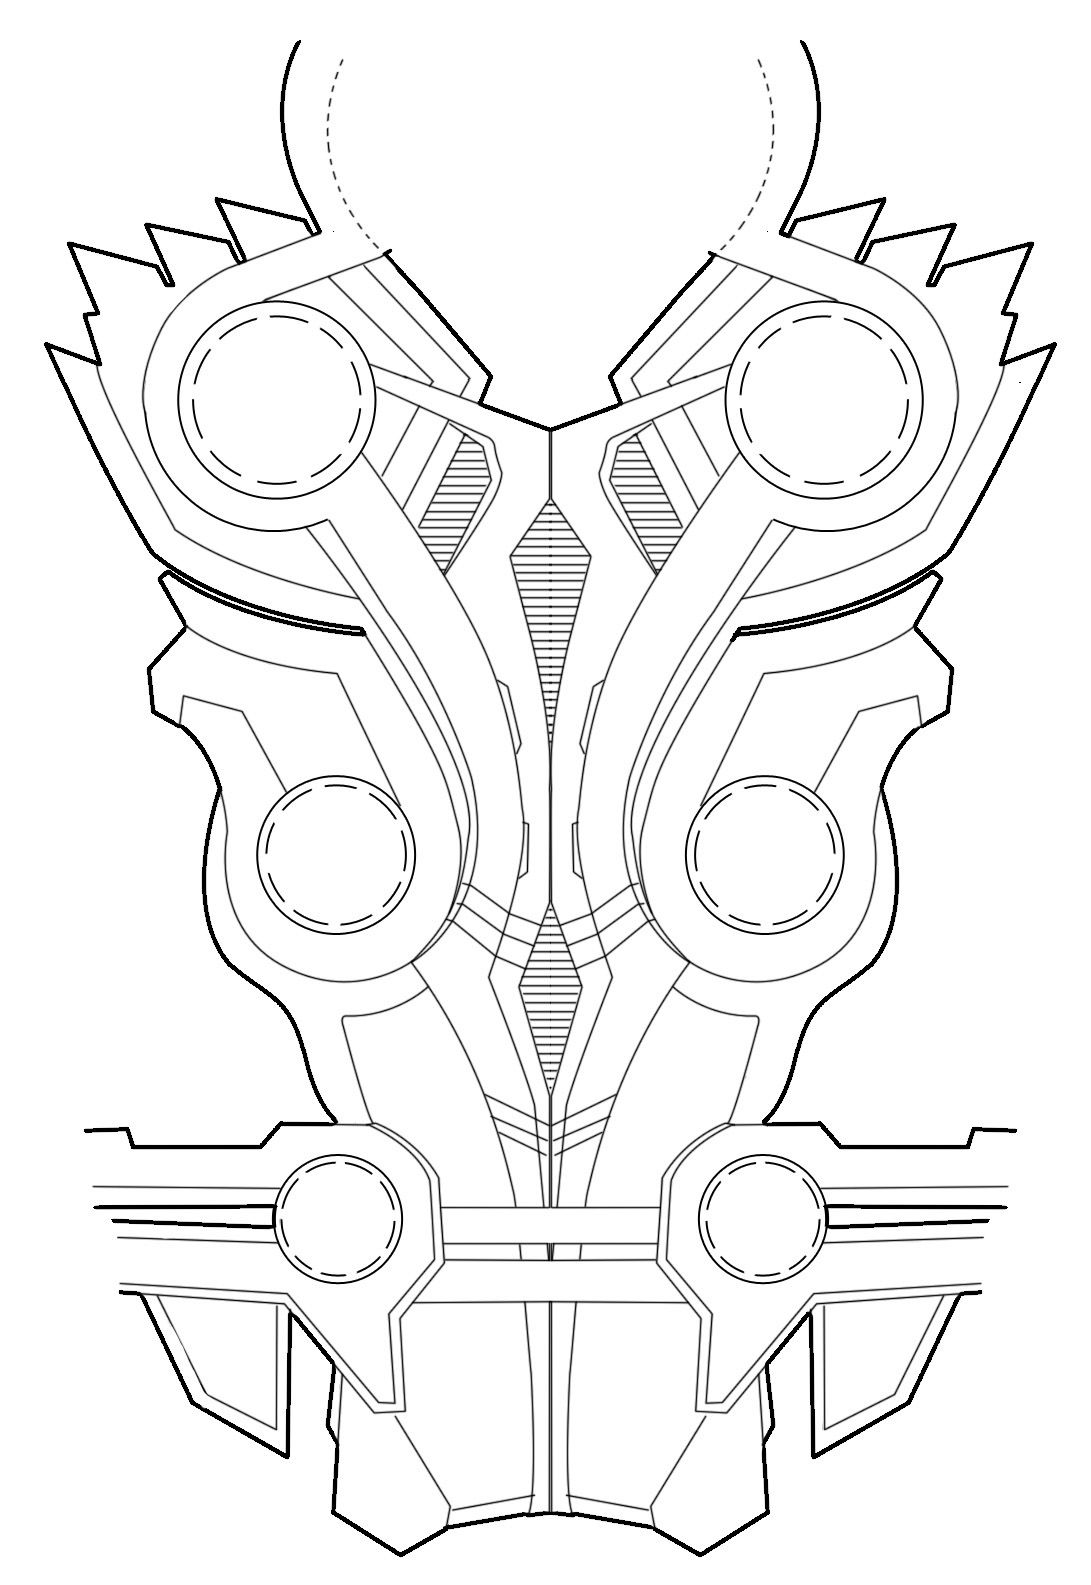 Thors Chest Armor Diagram For Rule S Thor Cosplay Feel